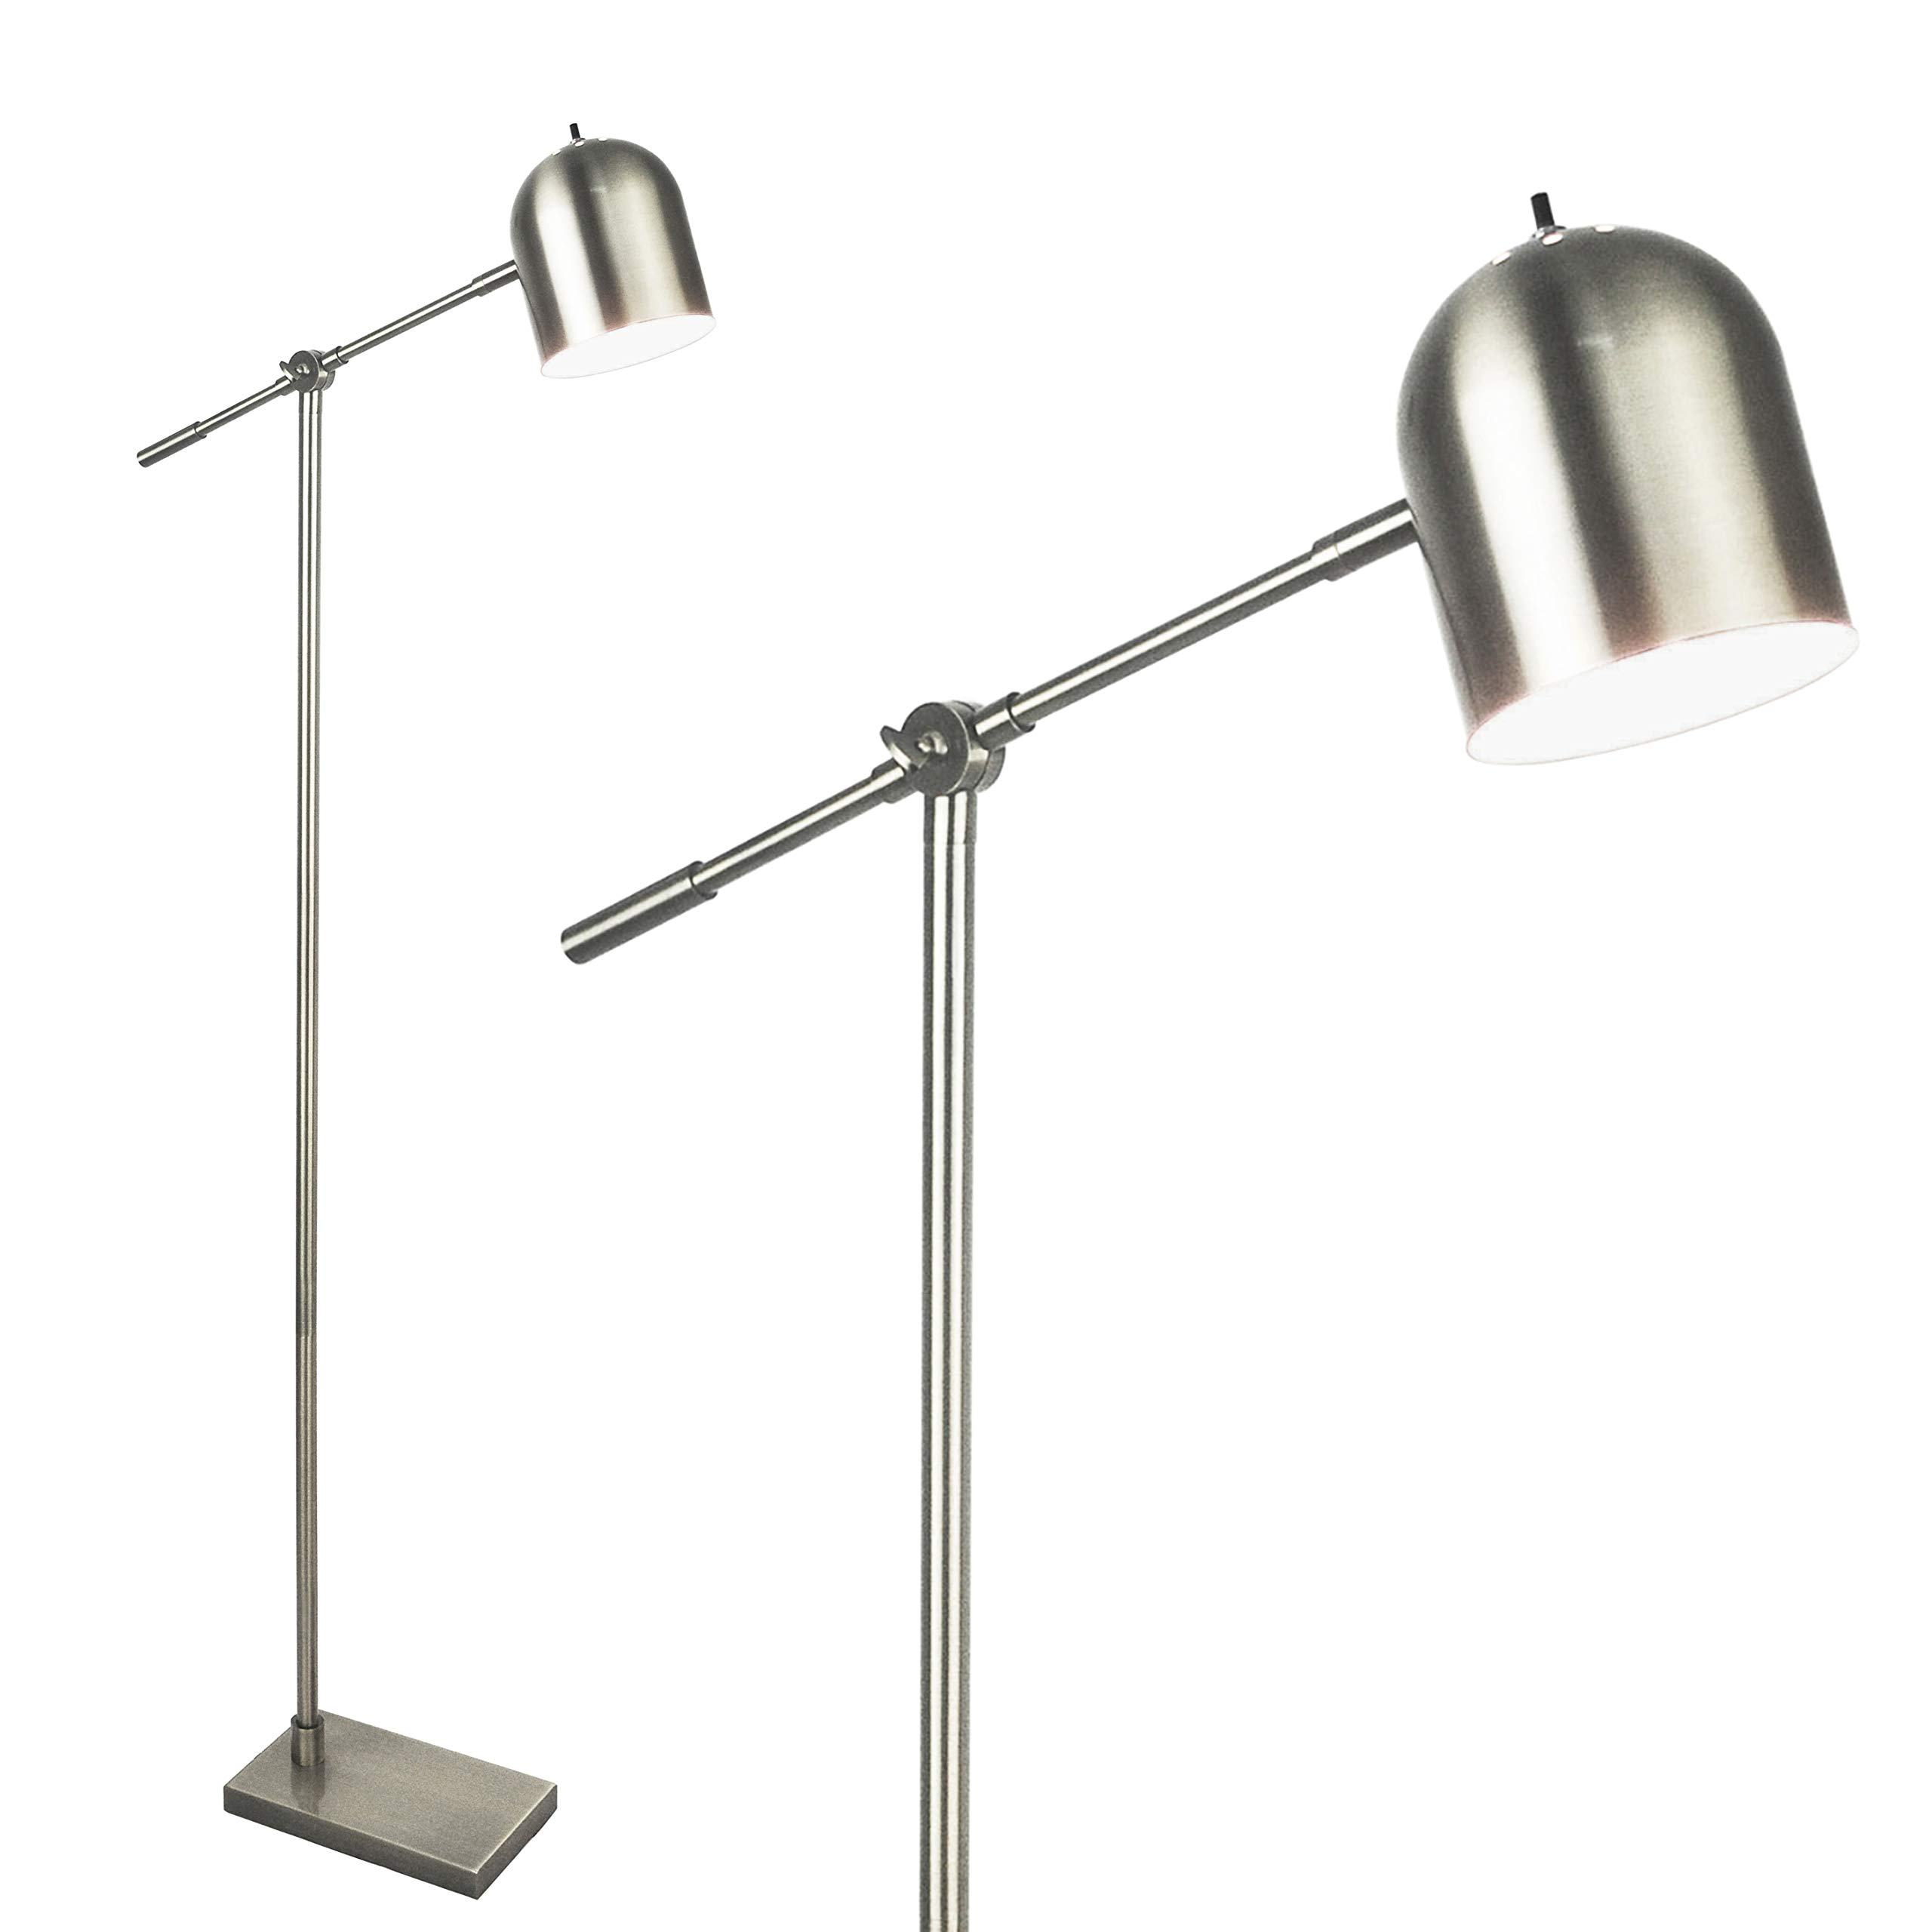 Light Accents Floor Lamp Adjustable Cantilever Modern Bright Standing Lamp Showroom Quality 59'' Tall Brushed Nickel Finish by LIGHTACCENTS